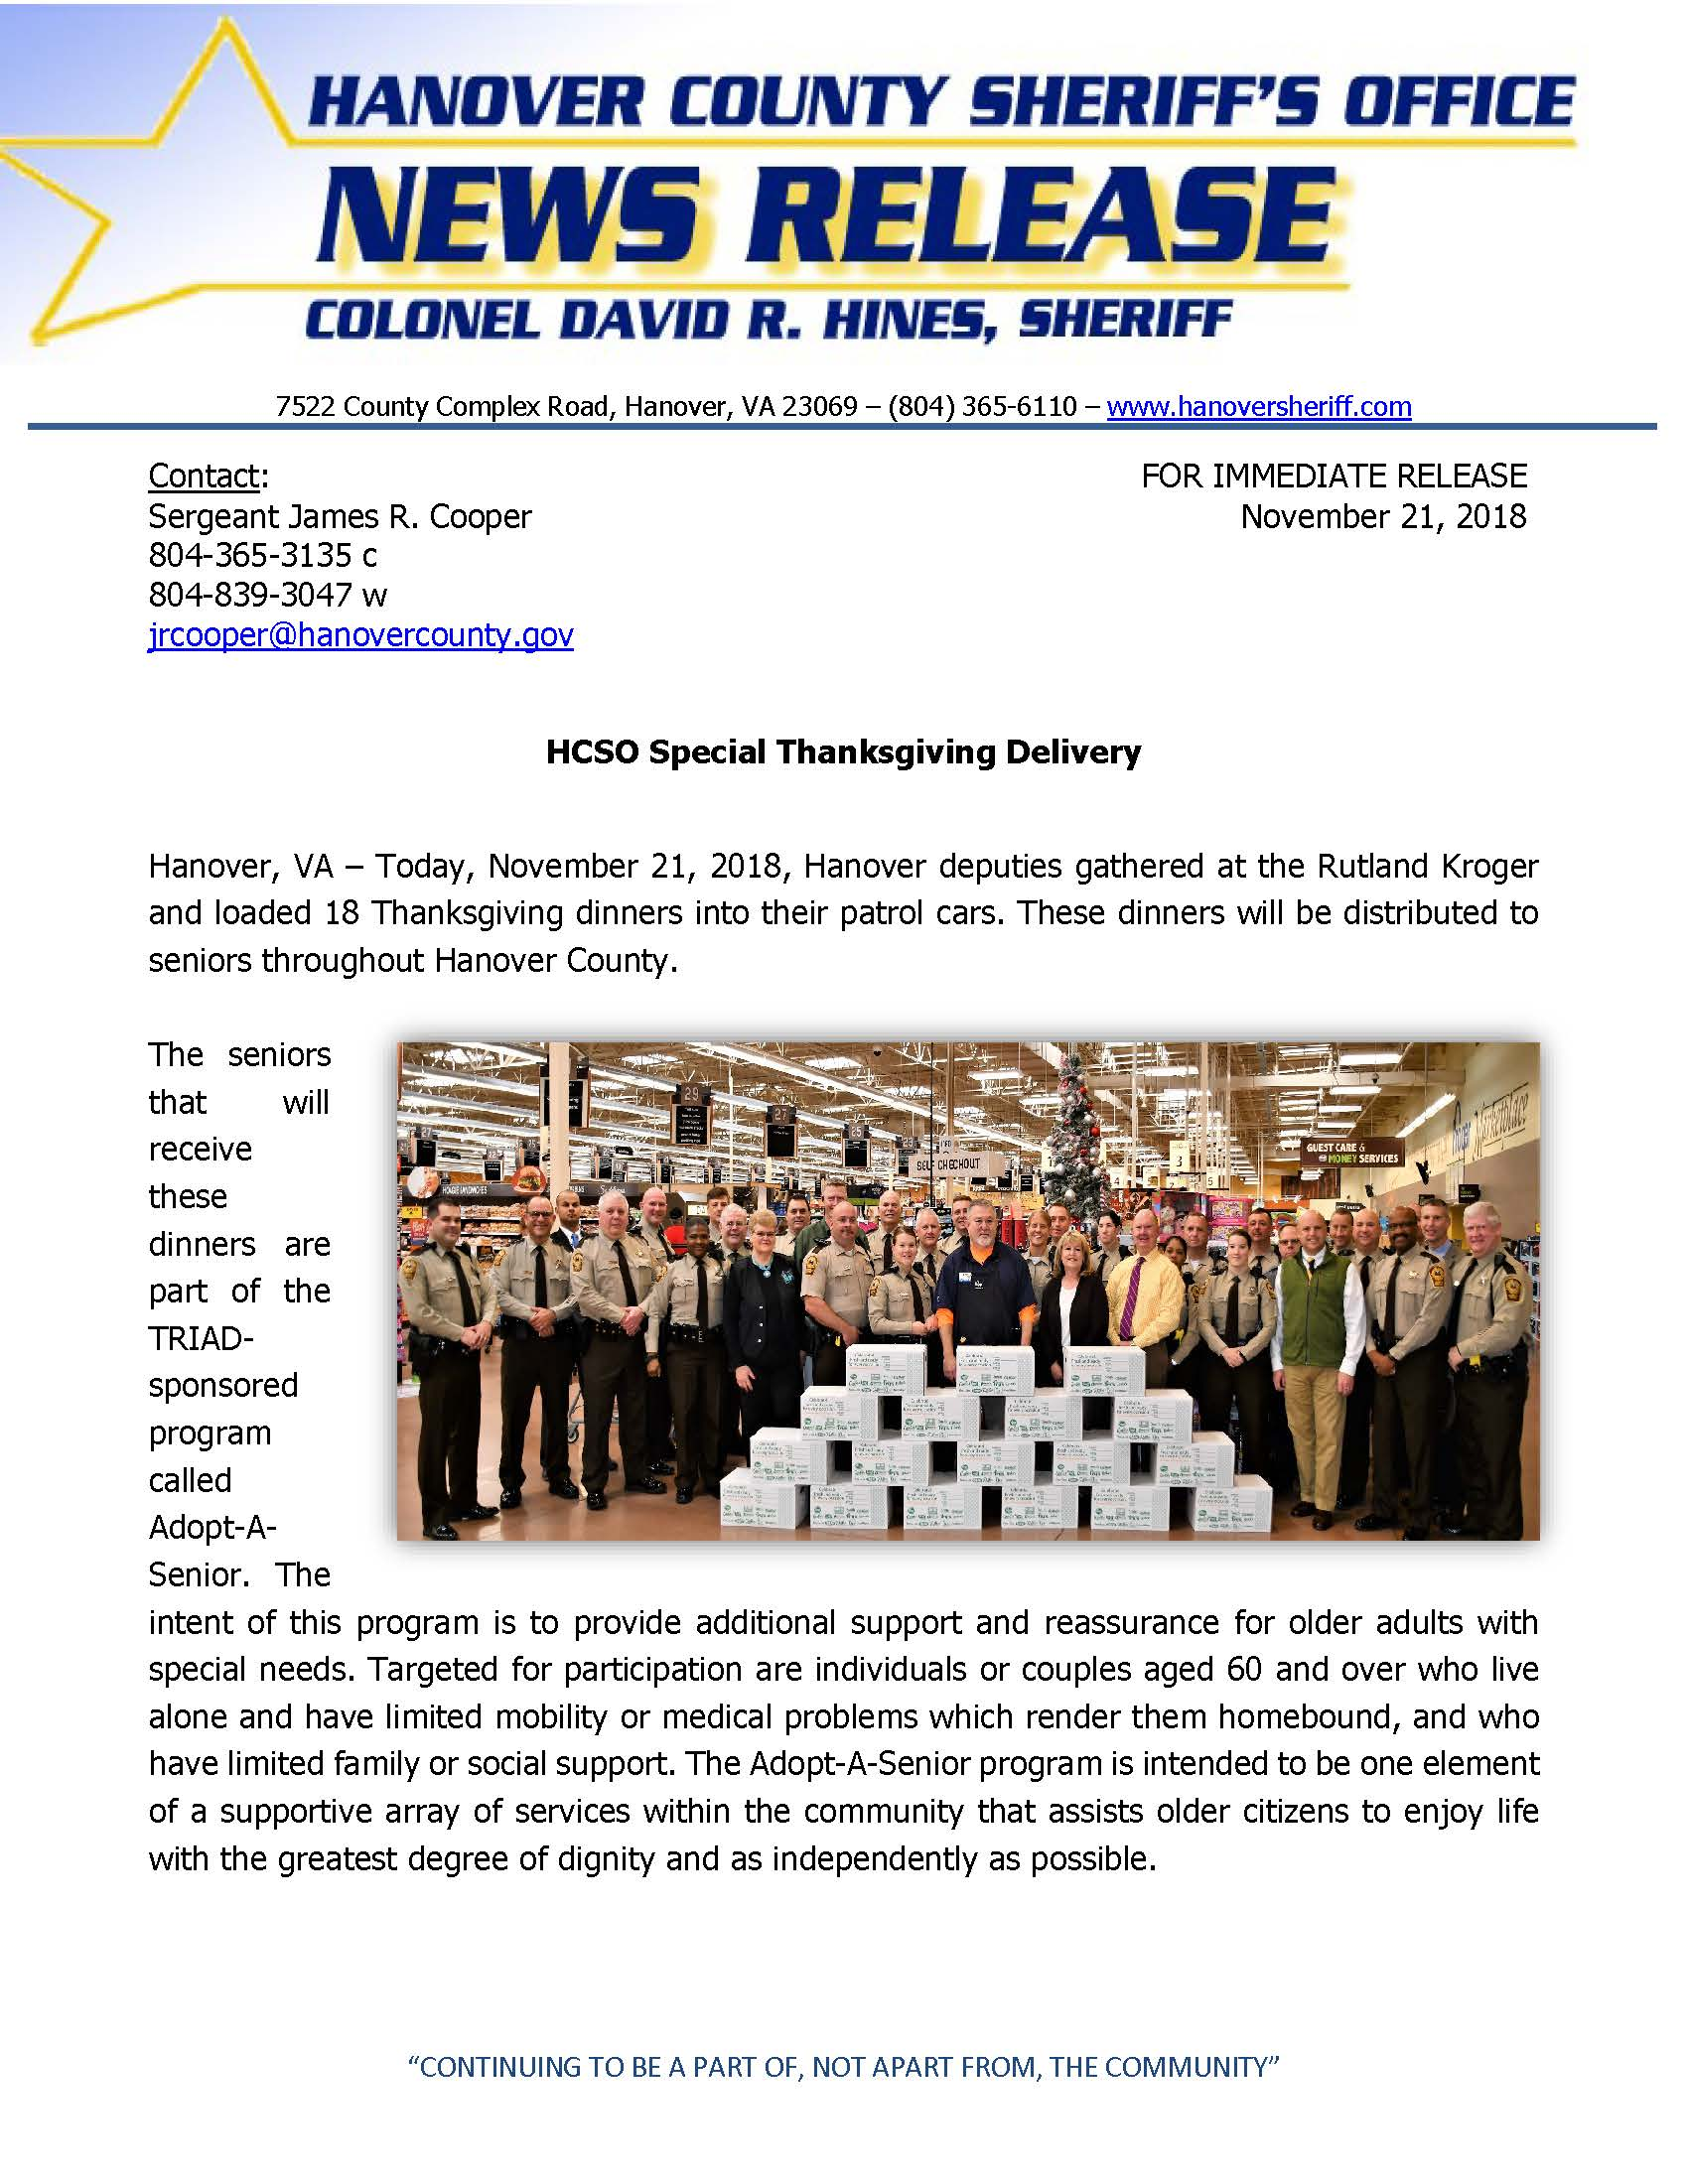 HCSO - Adopt-A-Senior Turkey Dinner- November 2018_Page_1